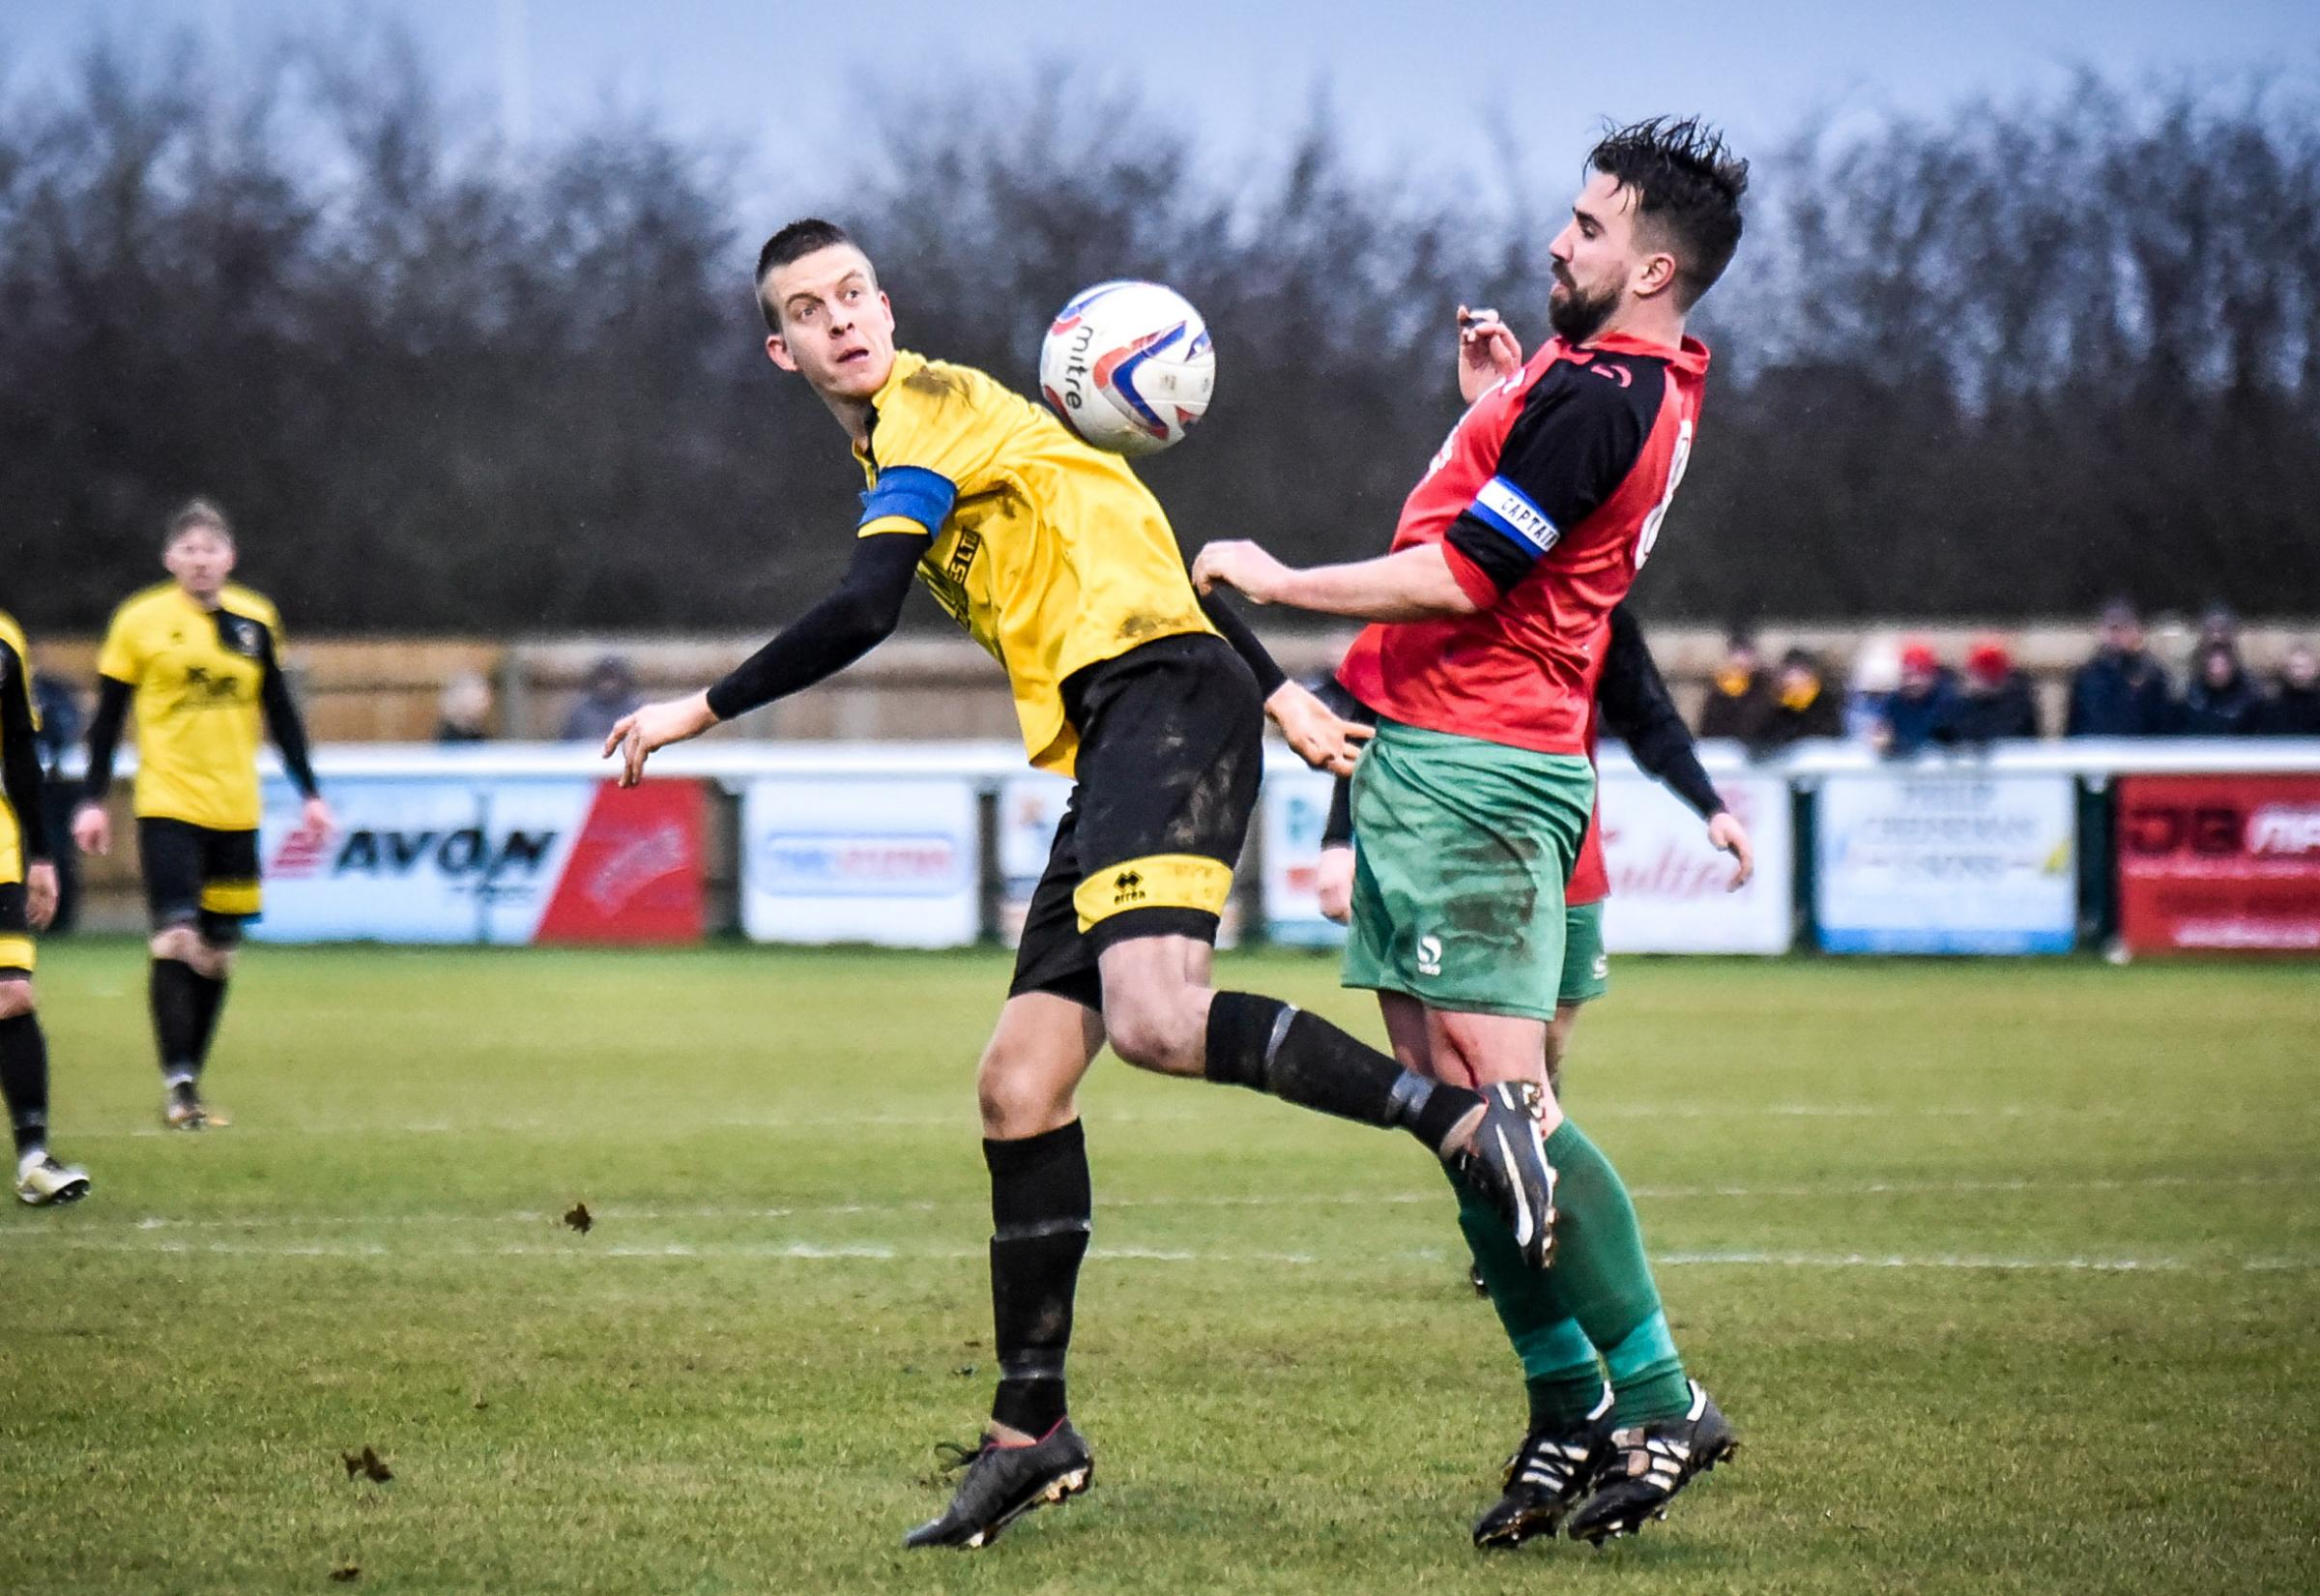 Gary Higdon (left) in action during Melksham's win in the last round of the FA Vase against Tring Athletic